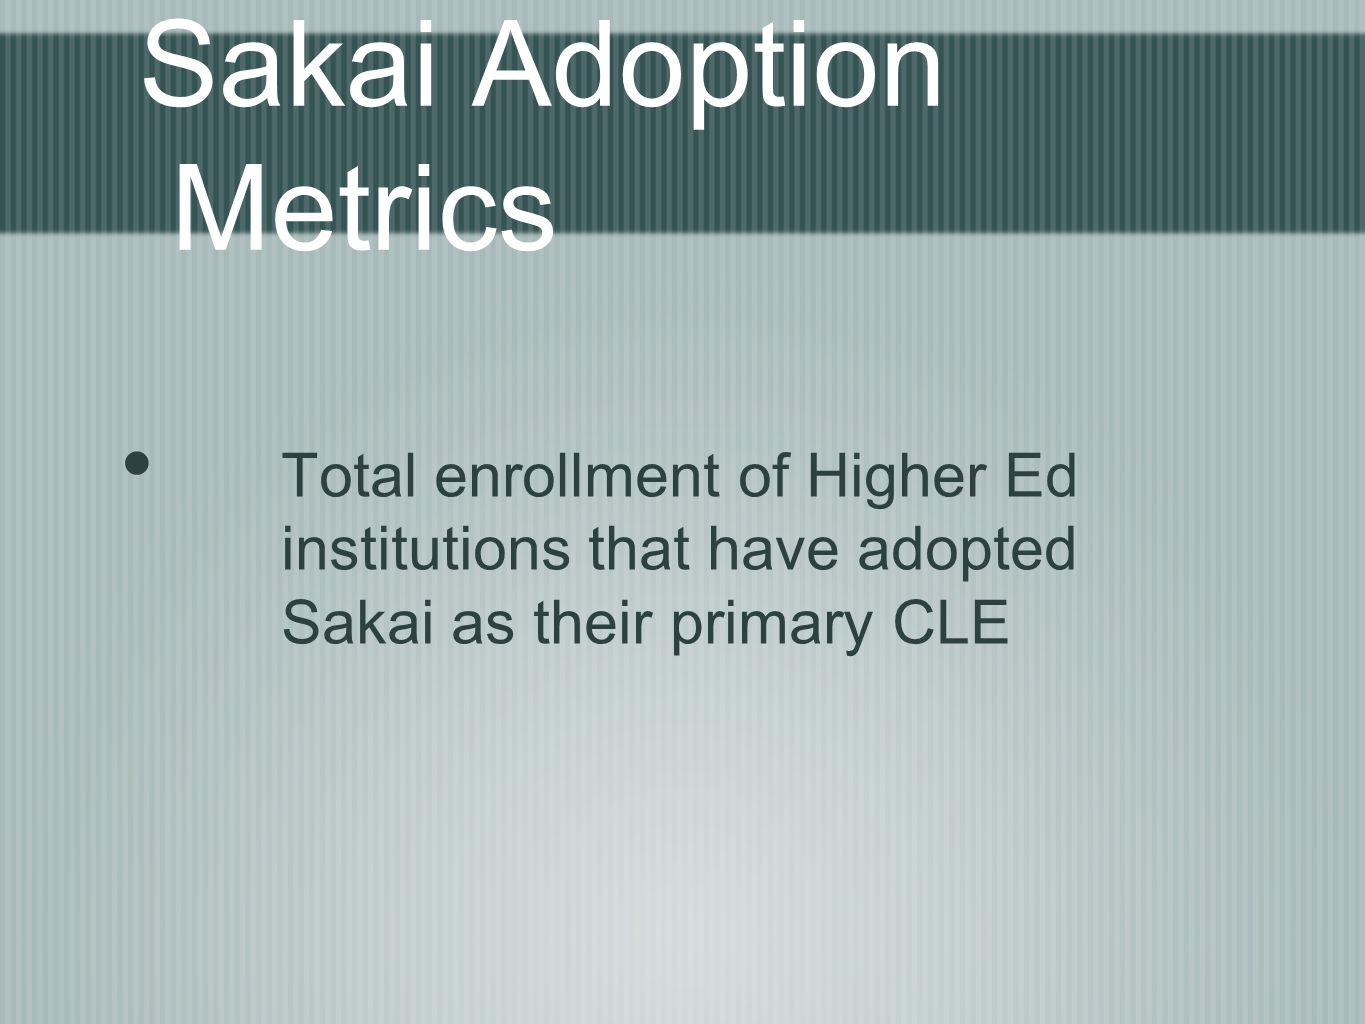 Sakai Adoption Metrics Total enrollment of Higher Ed institutions that have adopted Sakai as their primary CLE